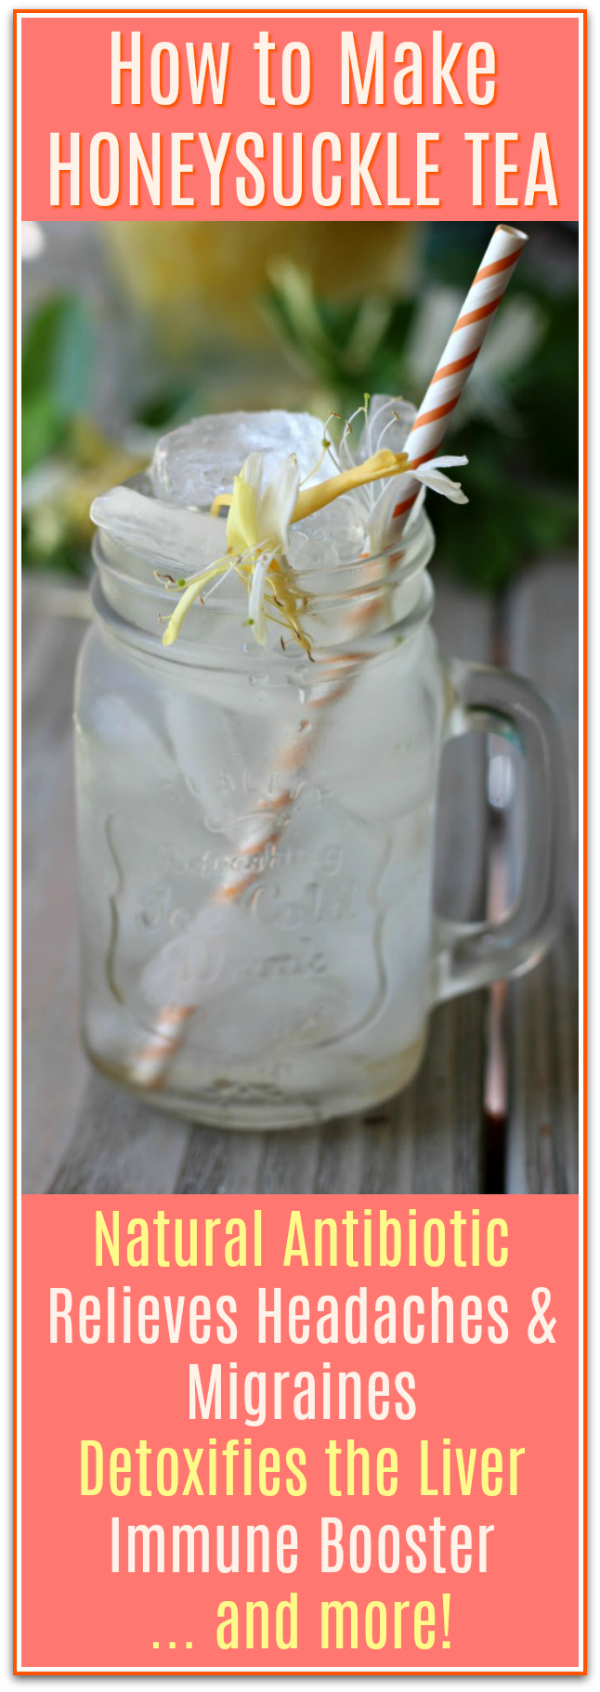 How to Make Honeysuckle Tea and health benefits of honeysuckle